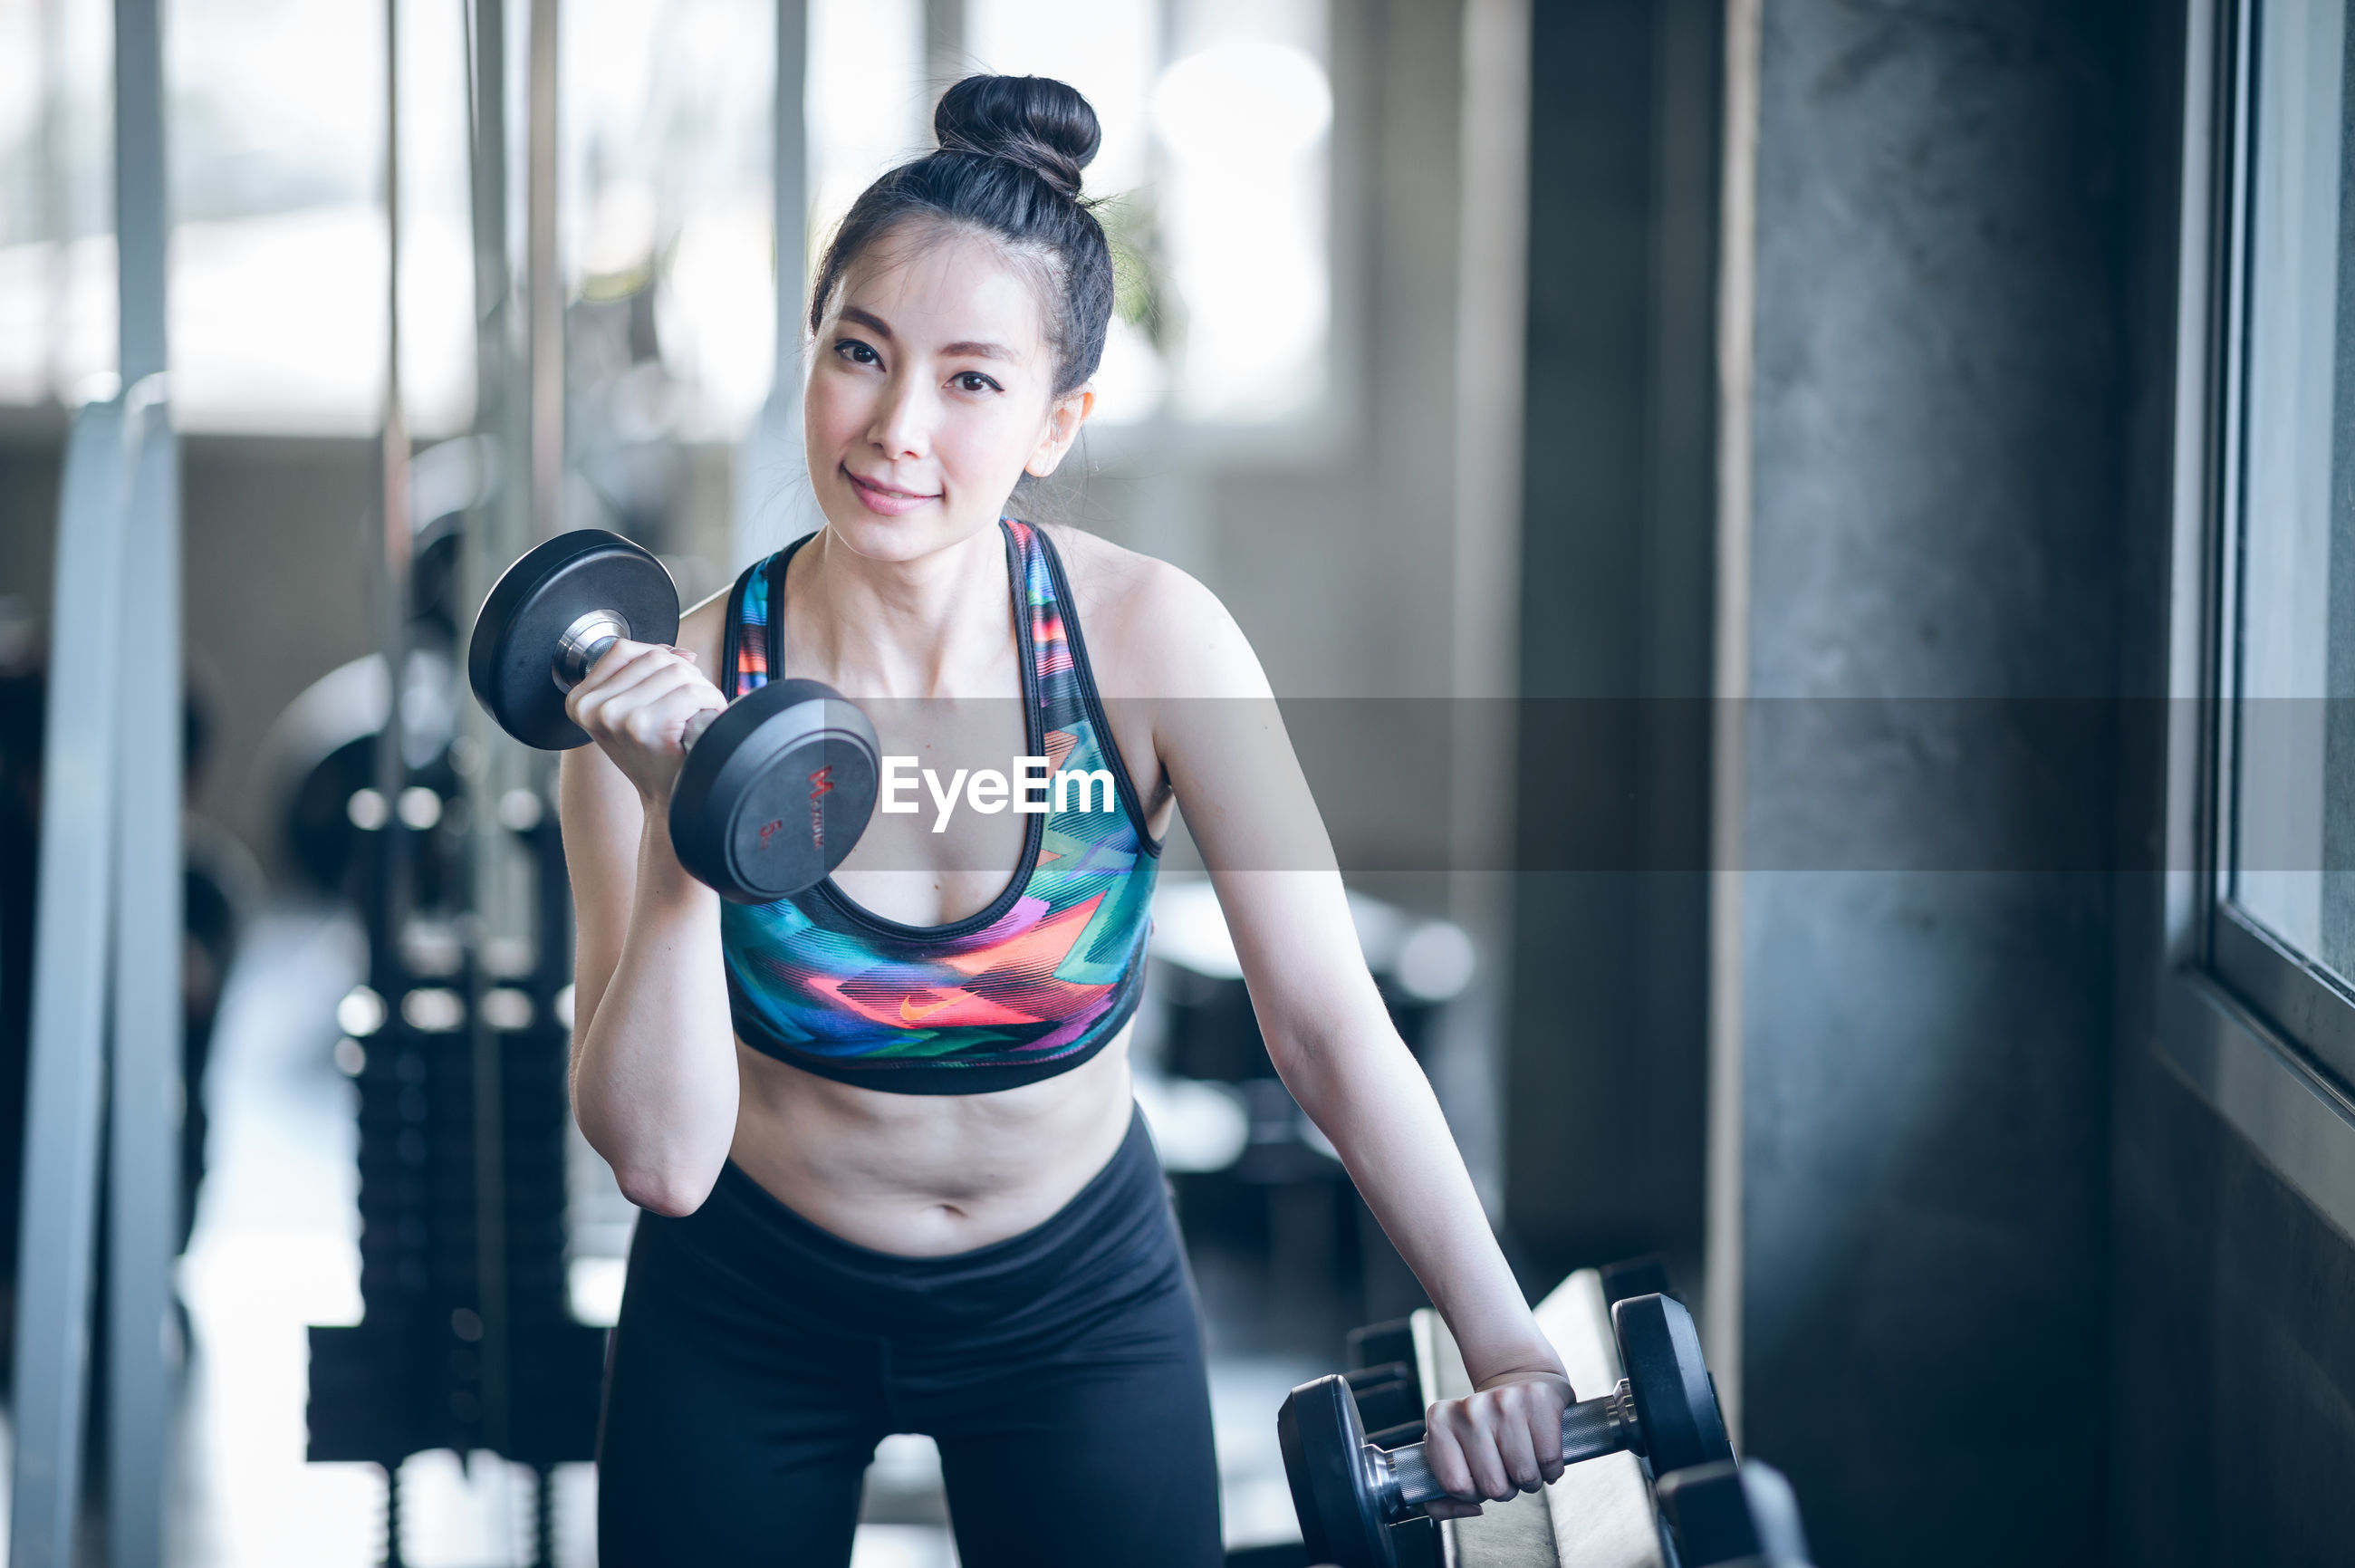 Portrait of woman exercising with dumbbells in gym